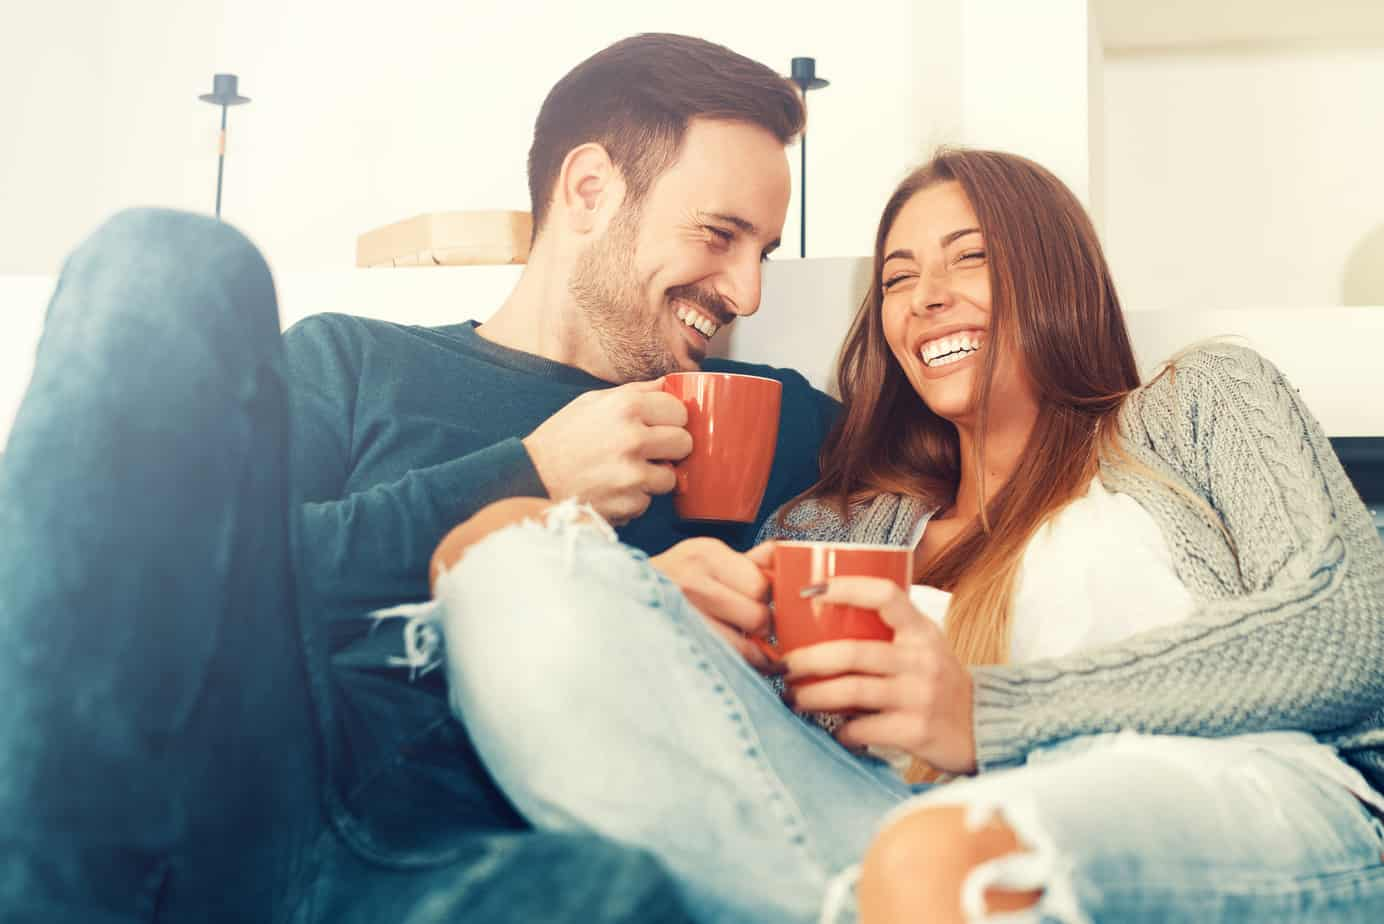 tips for a long distance relationship - couple sitting on couch drinking from red mugs